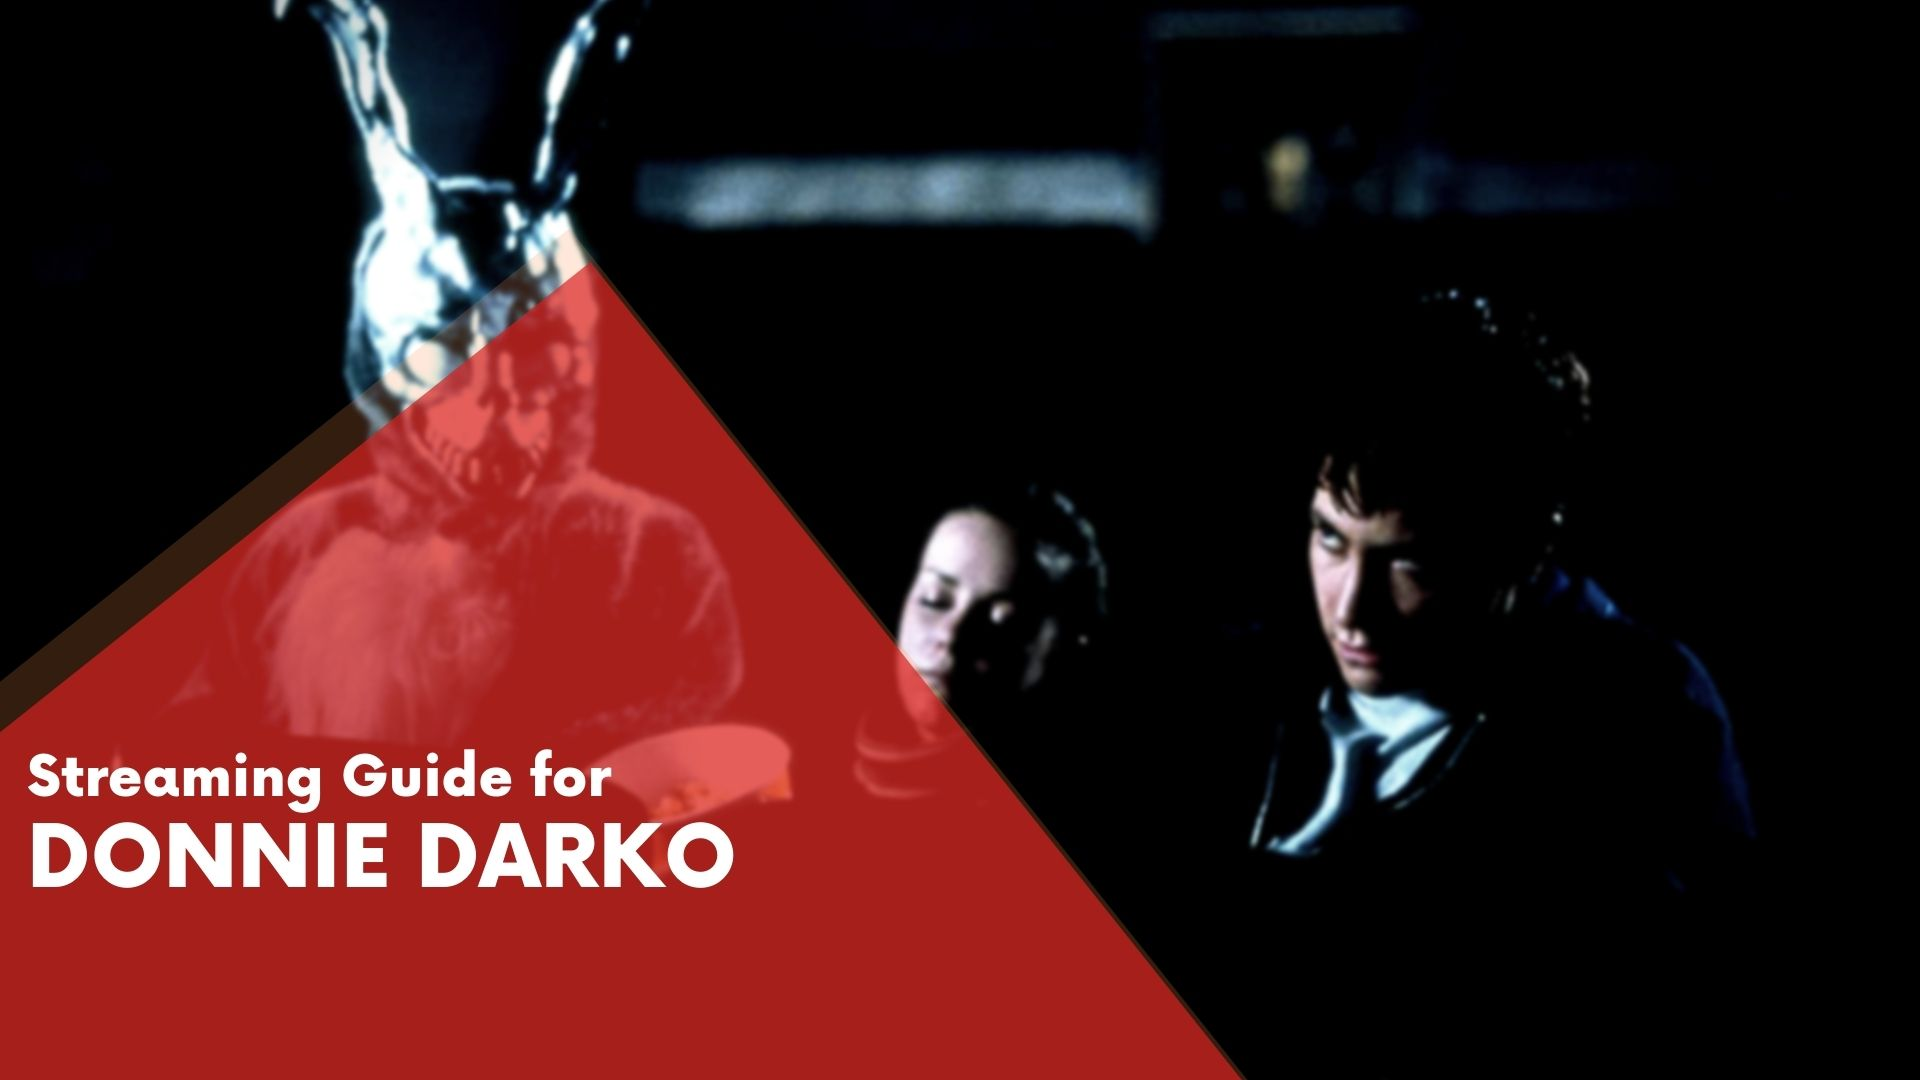 Answering if Donnie Darko is available on Hulu